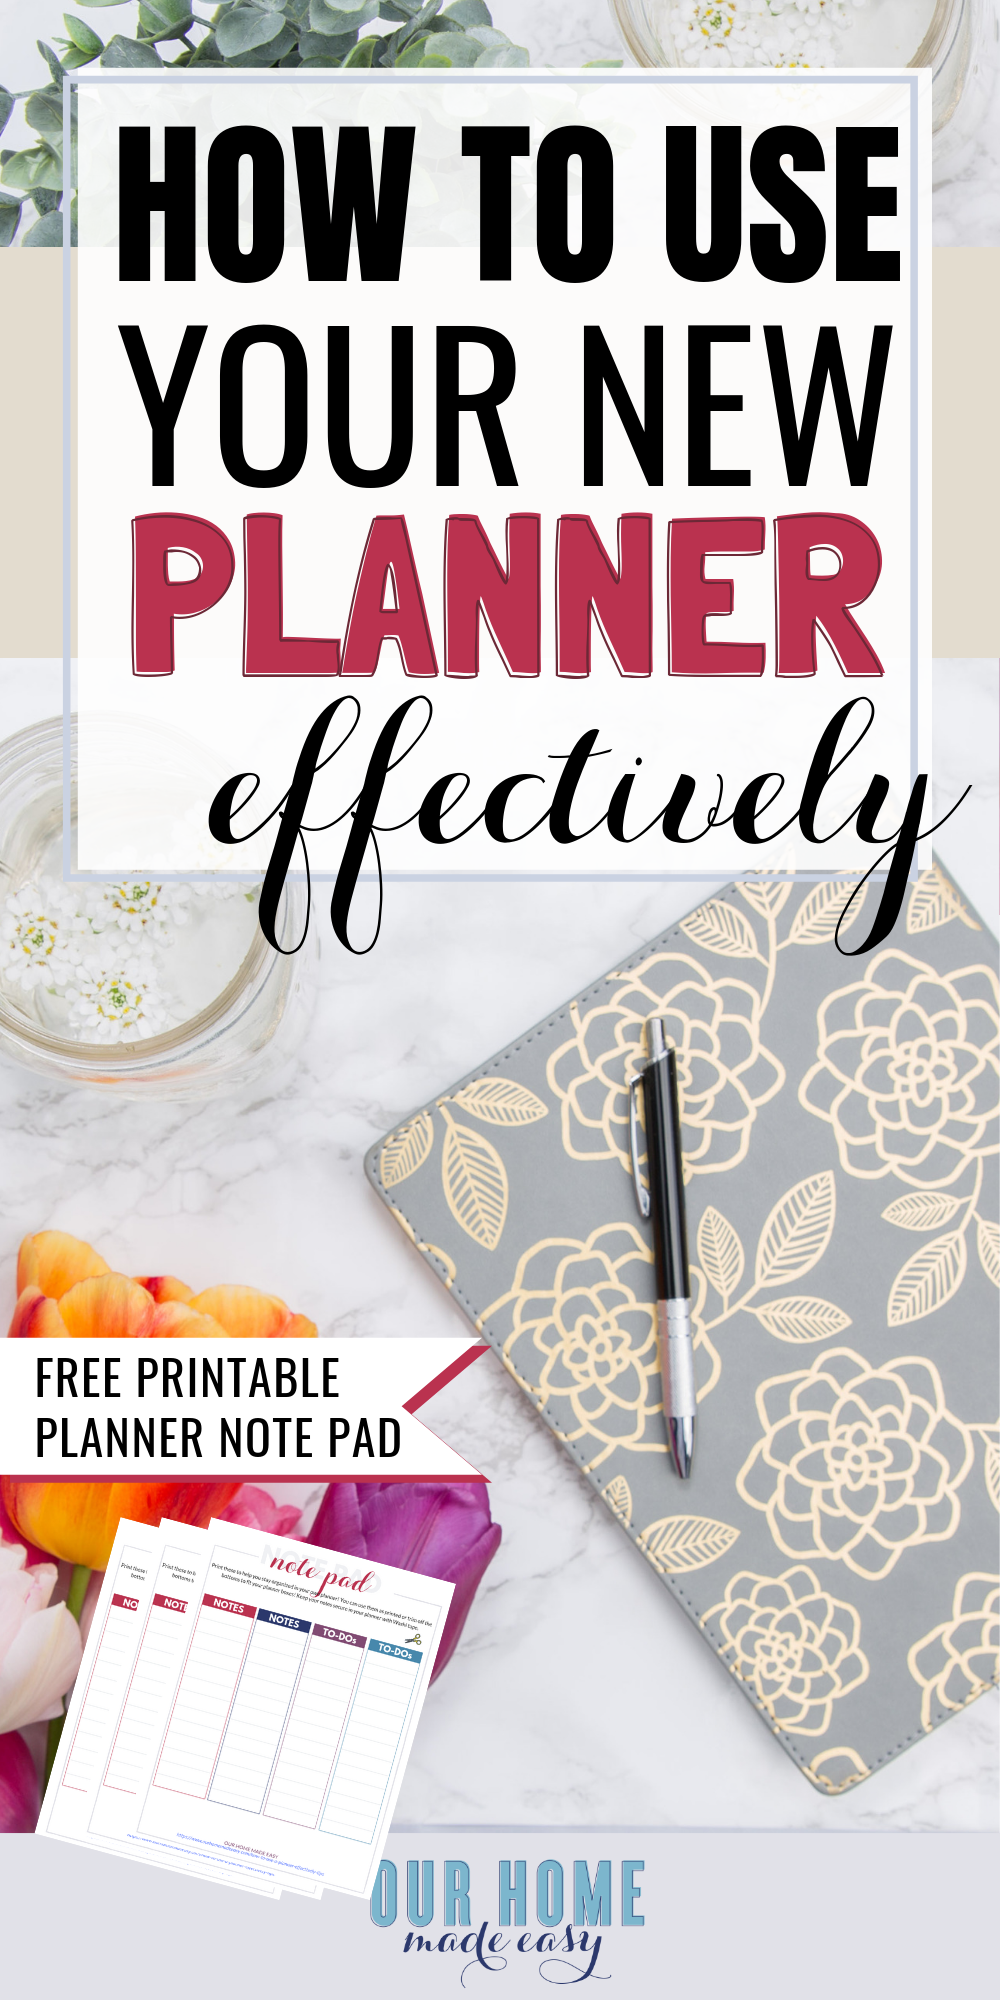 Here is how to use a planner effectively with 8 easy tips! You will stay organized all year long with your planner! Stop buying planners that you won't use! #organization #planner #home #ourhomemadeeasy